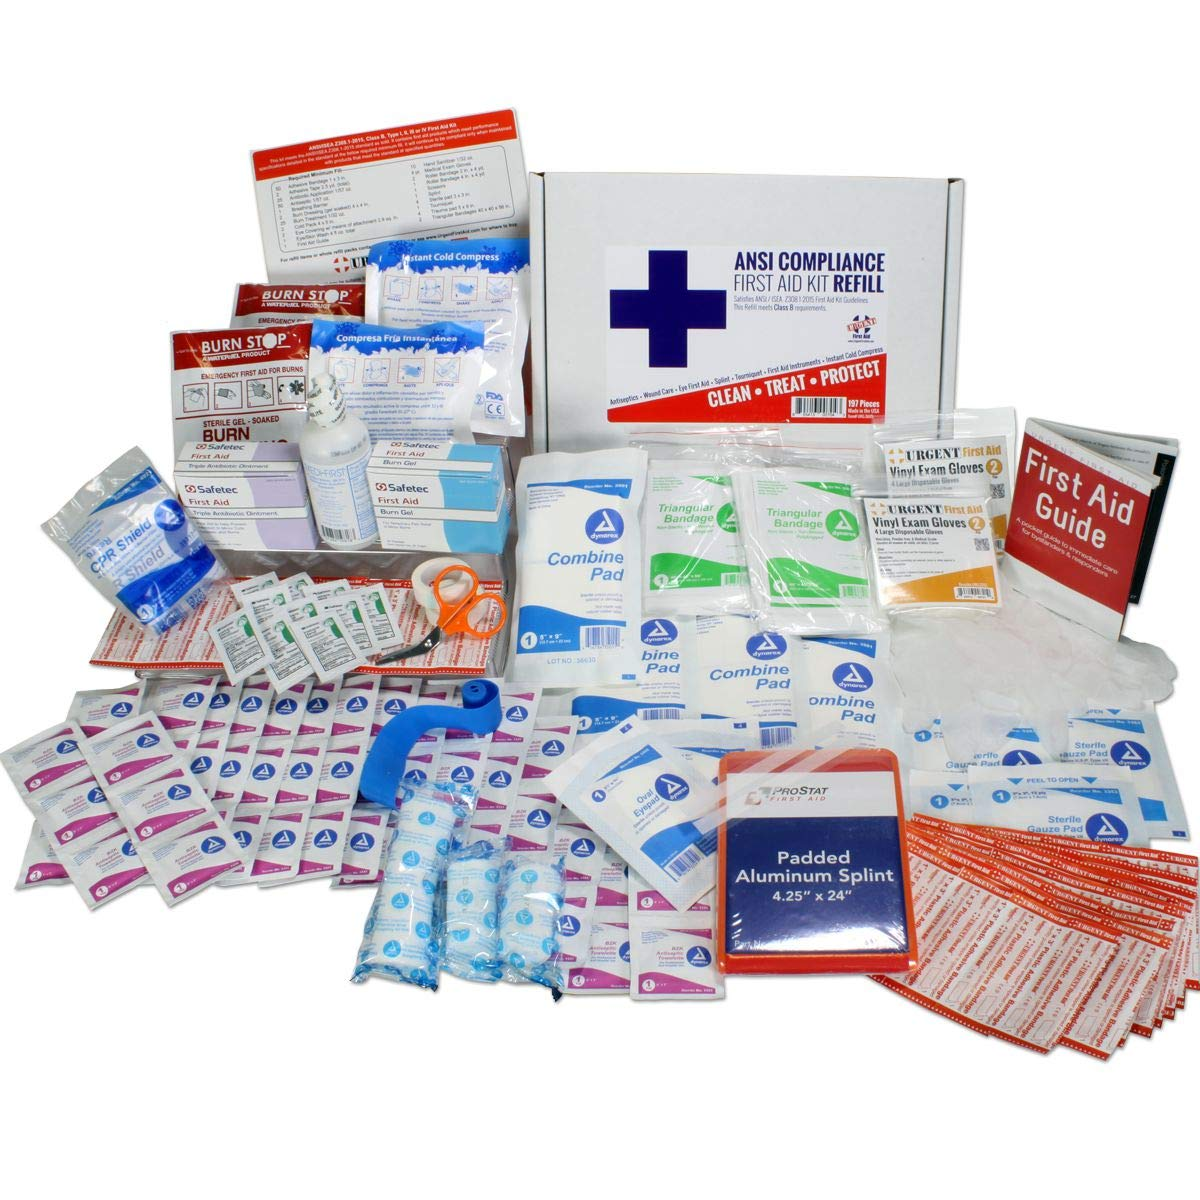 OSHA & ANSI First Aid Kit Refill/Upgrade, 50 Person, 196 Pieces, ANSI 2015 Class B - Includes Splint, Tourniquet, Tools, Single dose and More: Fill Your kit or use to Upgrade to Current regulations by Urgent First Aid